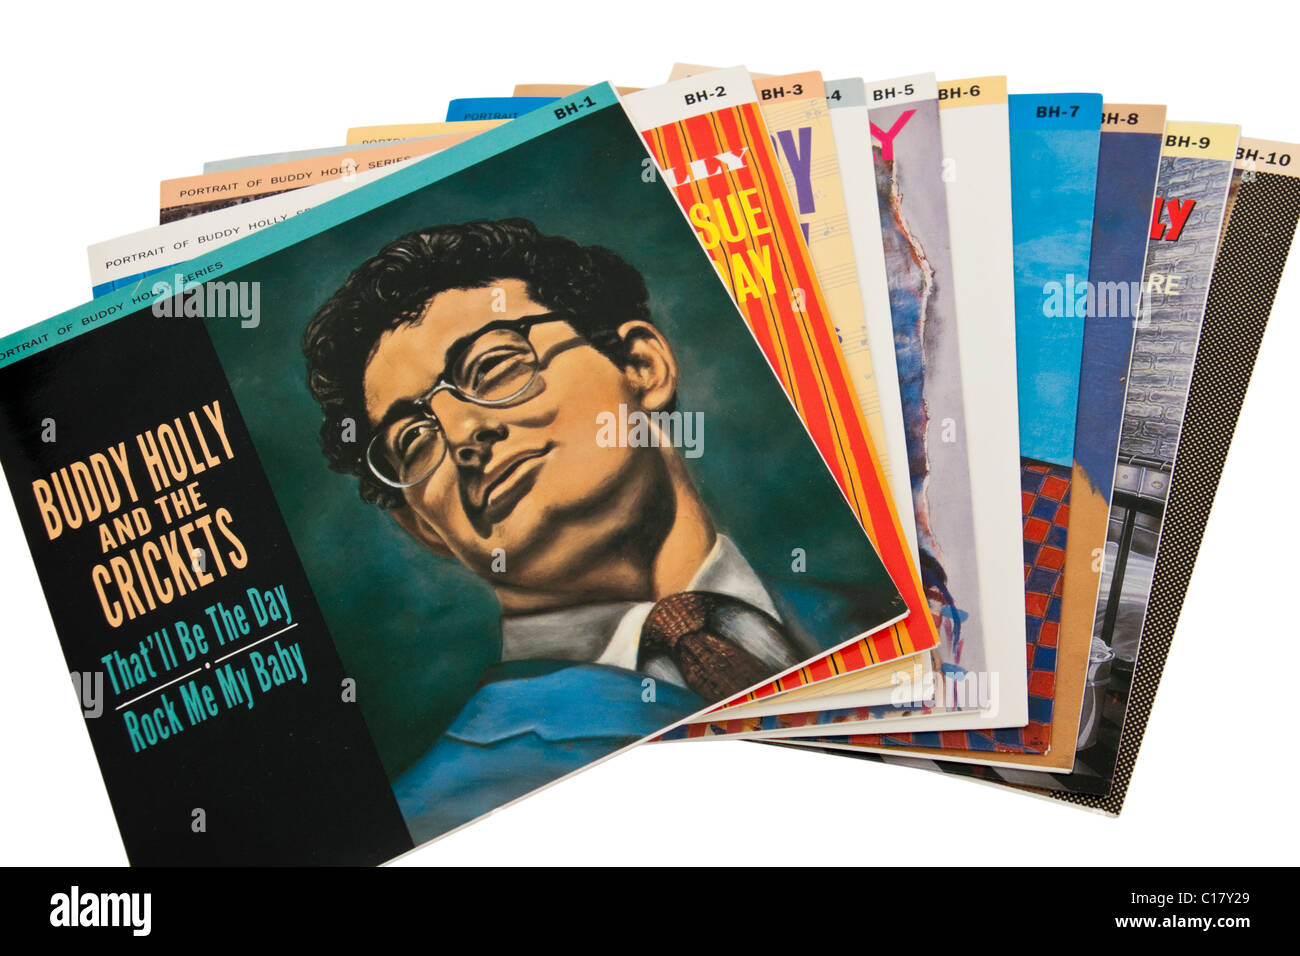 Collection of Buddy Holly vinyl records / 7' singles / EP's - Stock Image